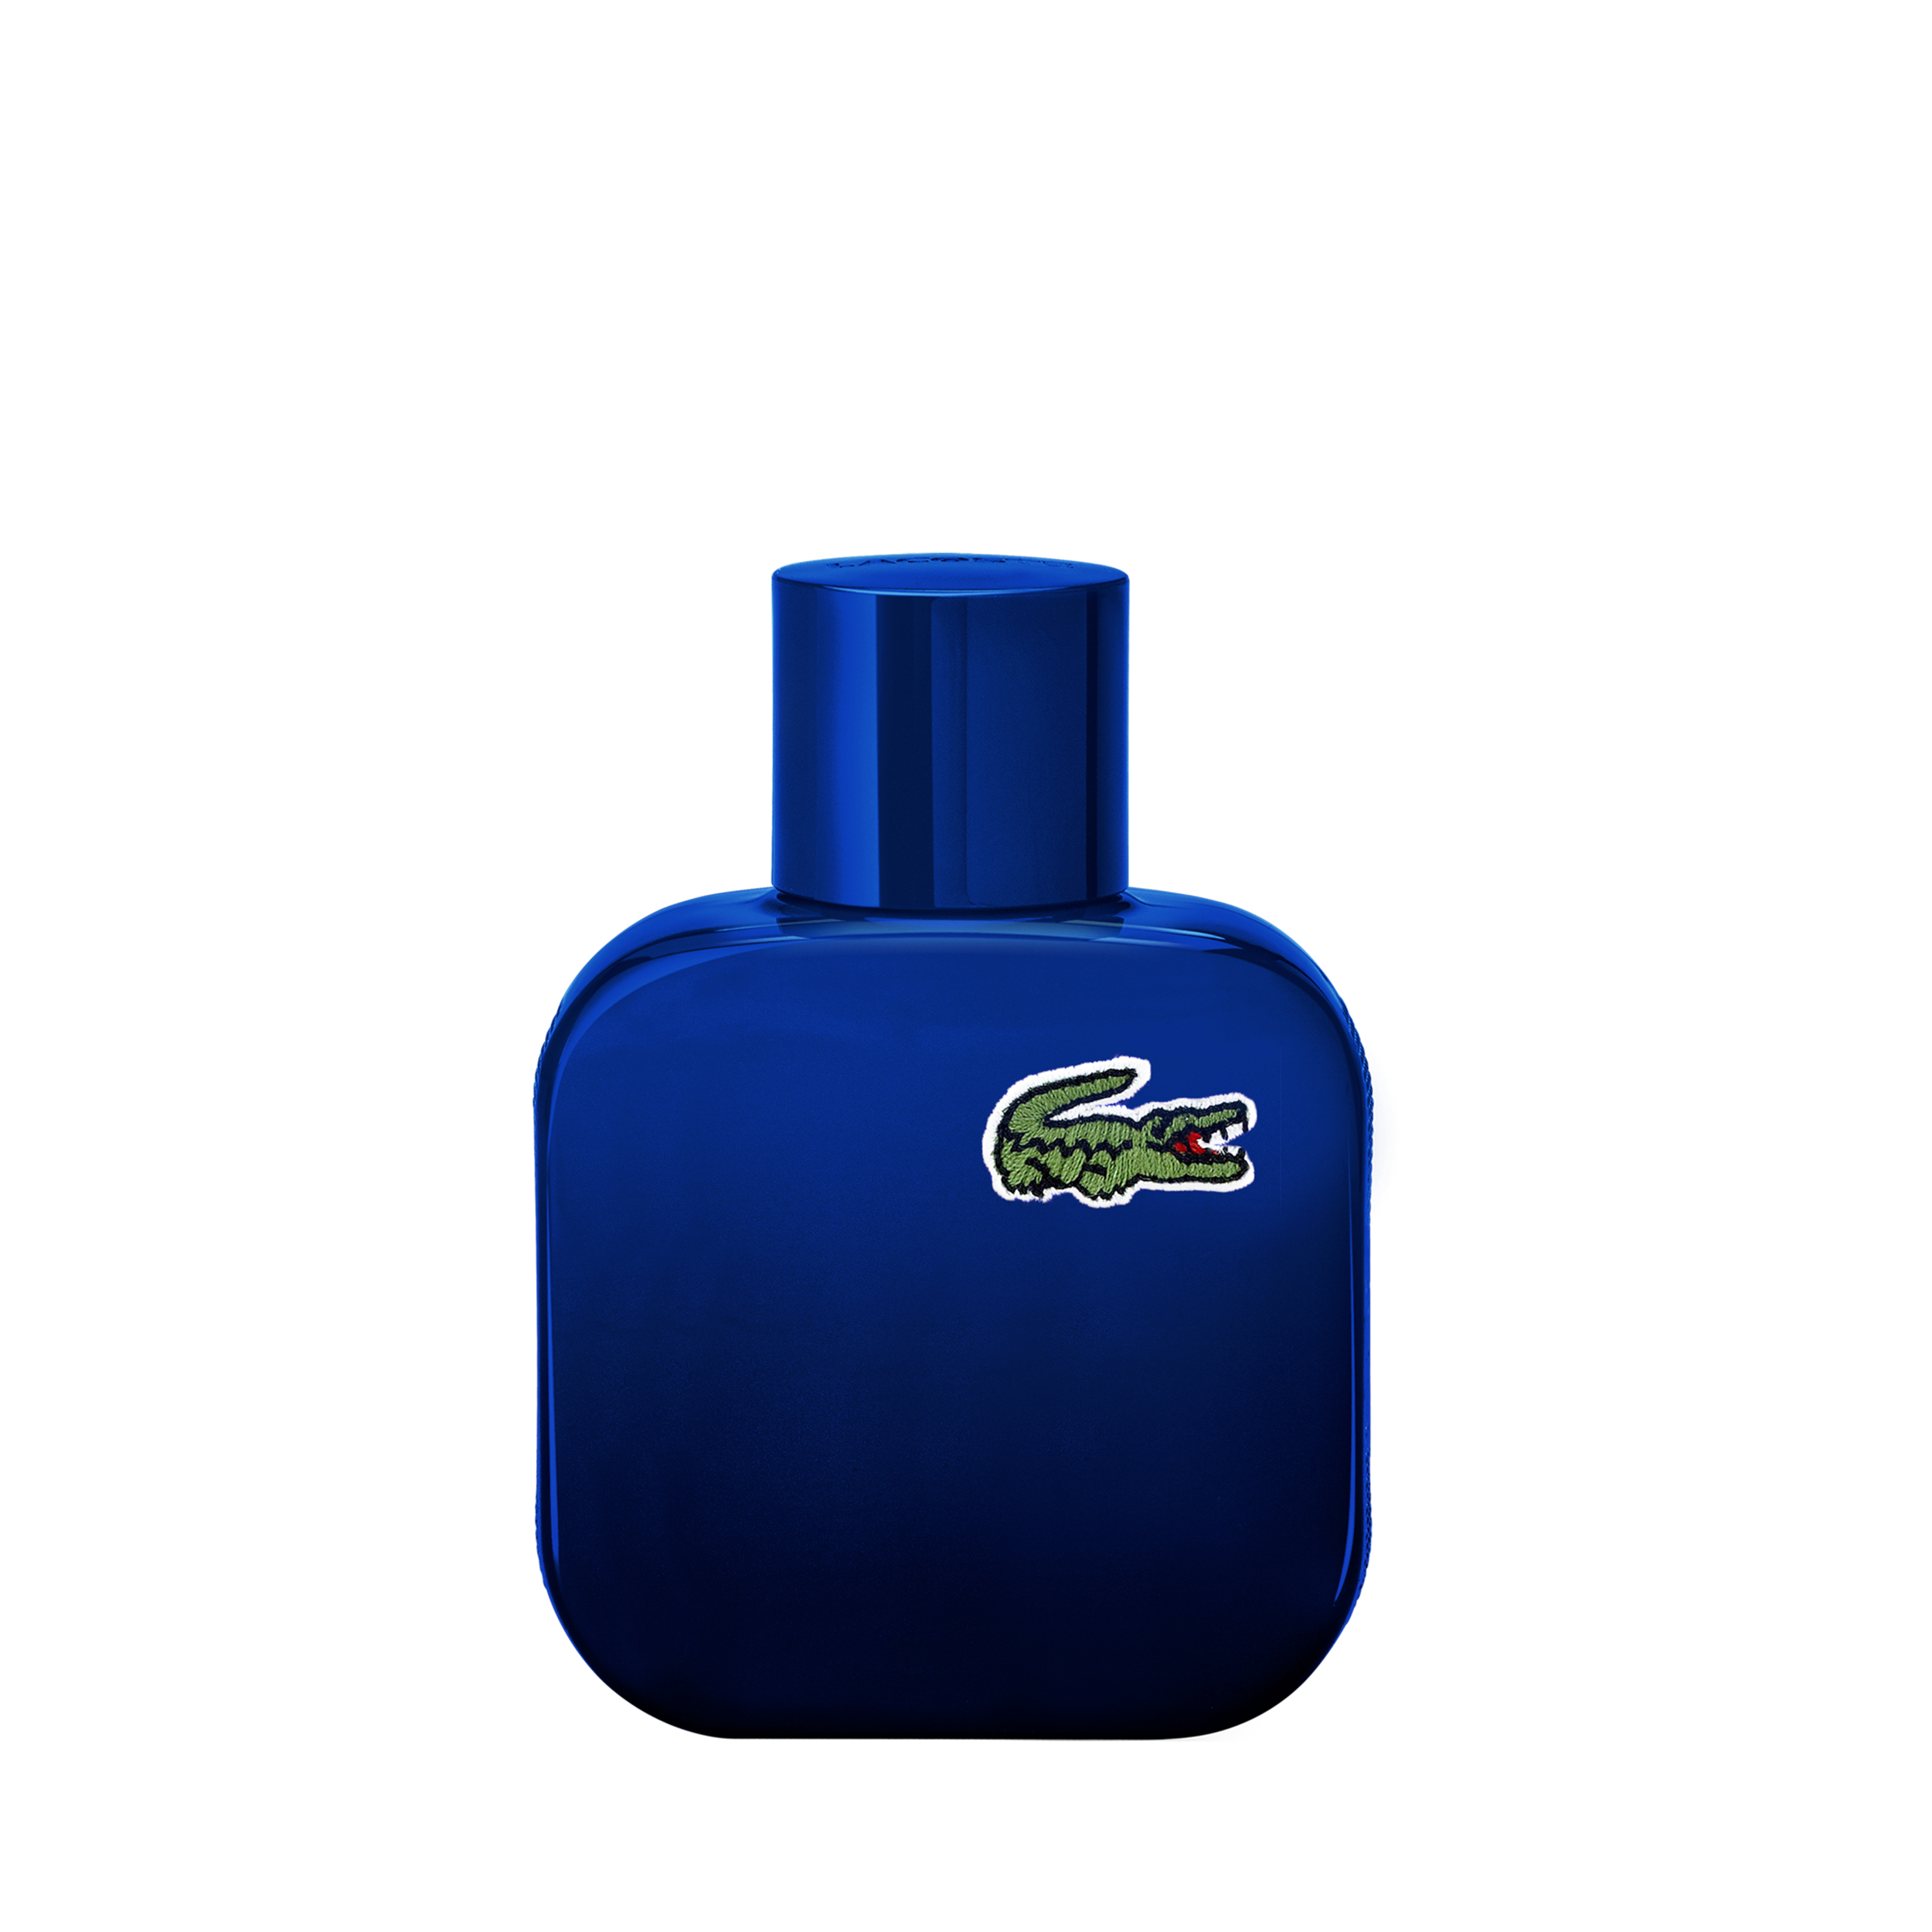 EAU DE LACOSTE L.12.12 MAGNETIC EDT 50 ML